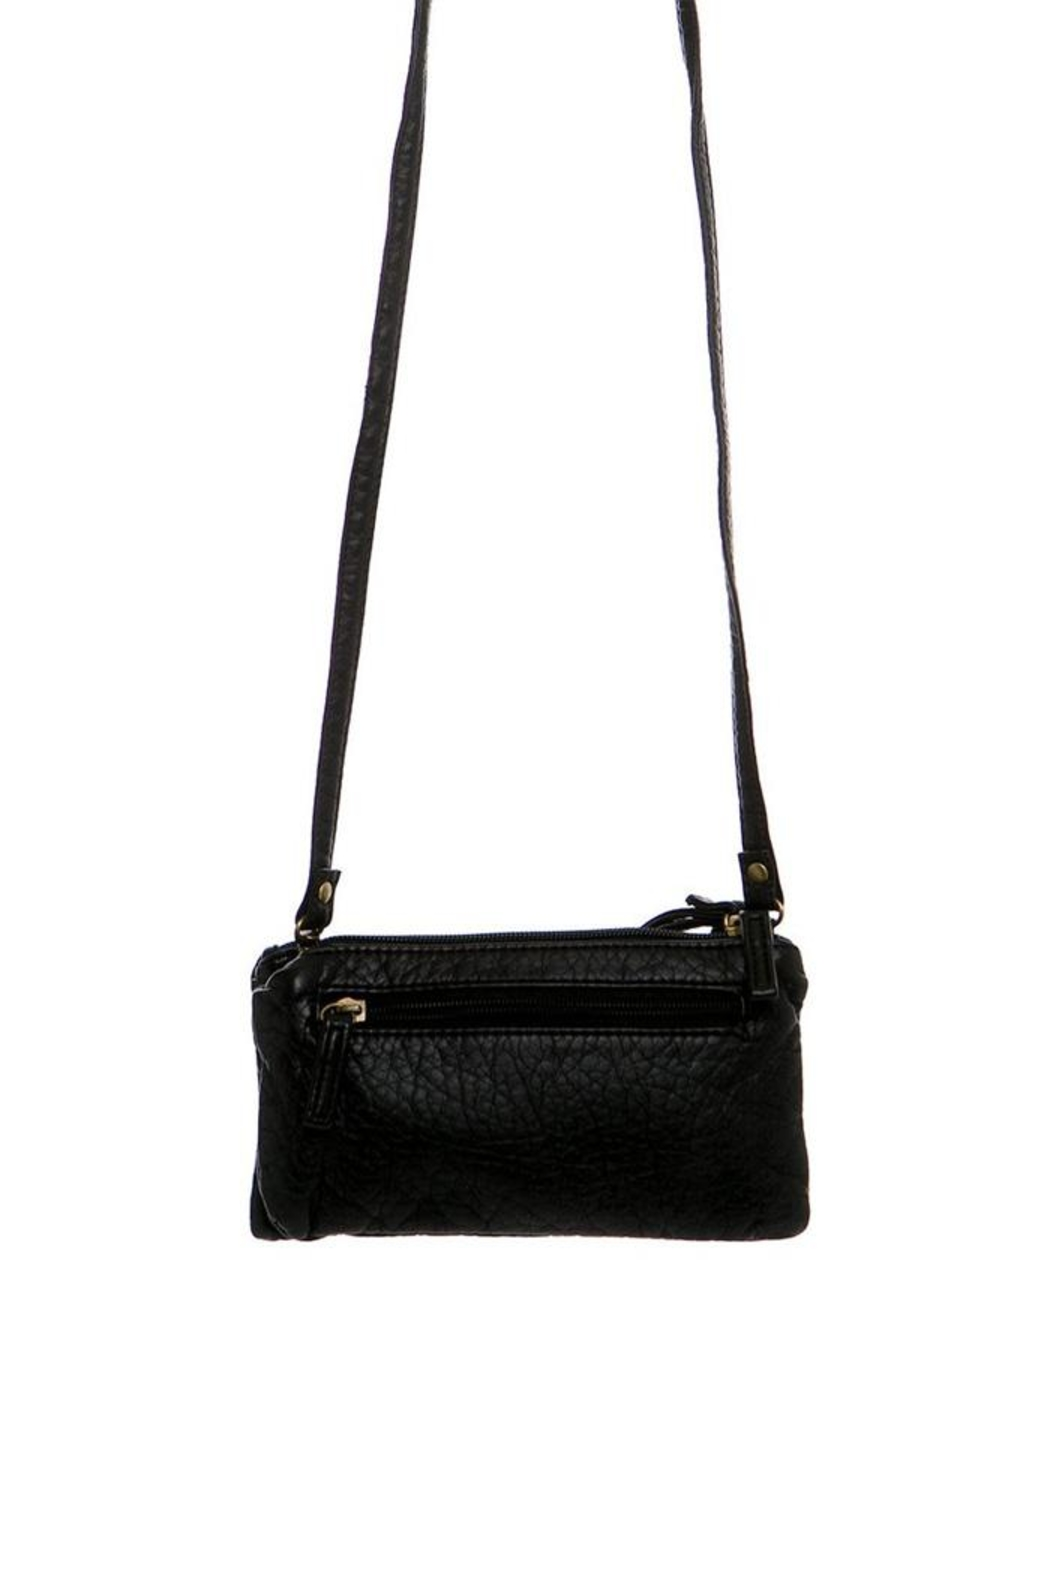 Ampere Creations Classic Three-Way Purse - Front Full Image